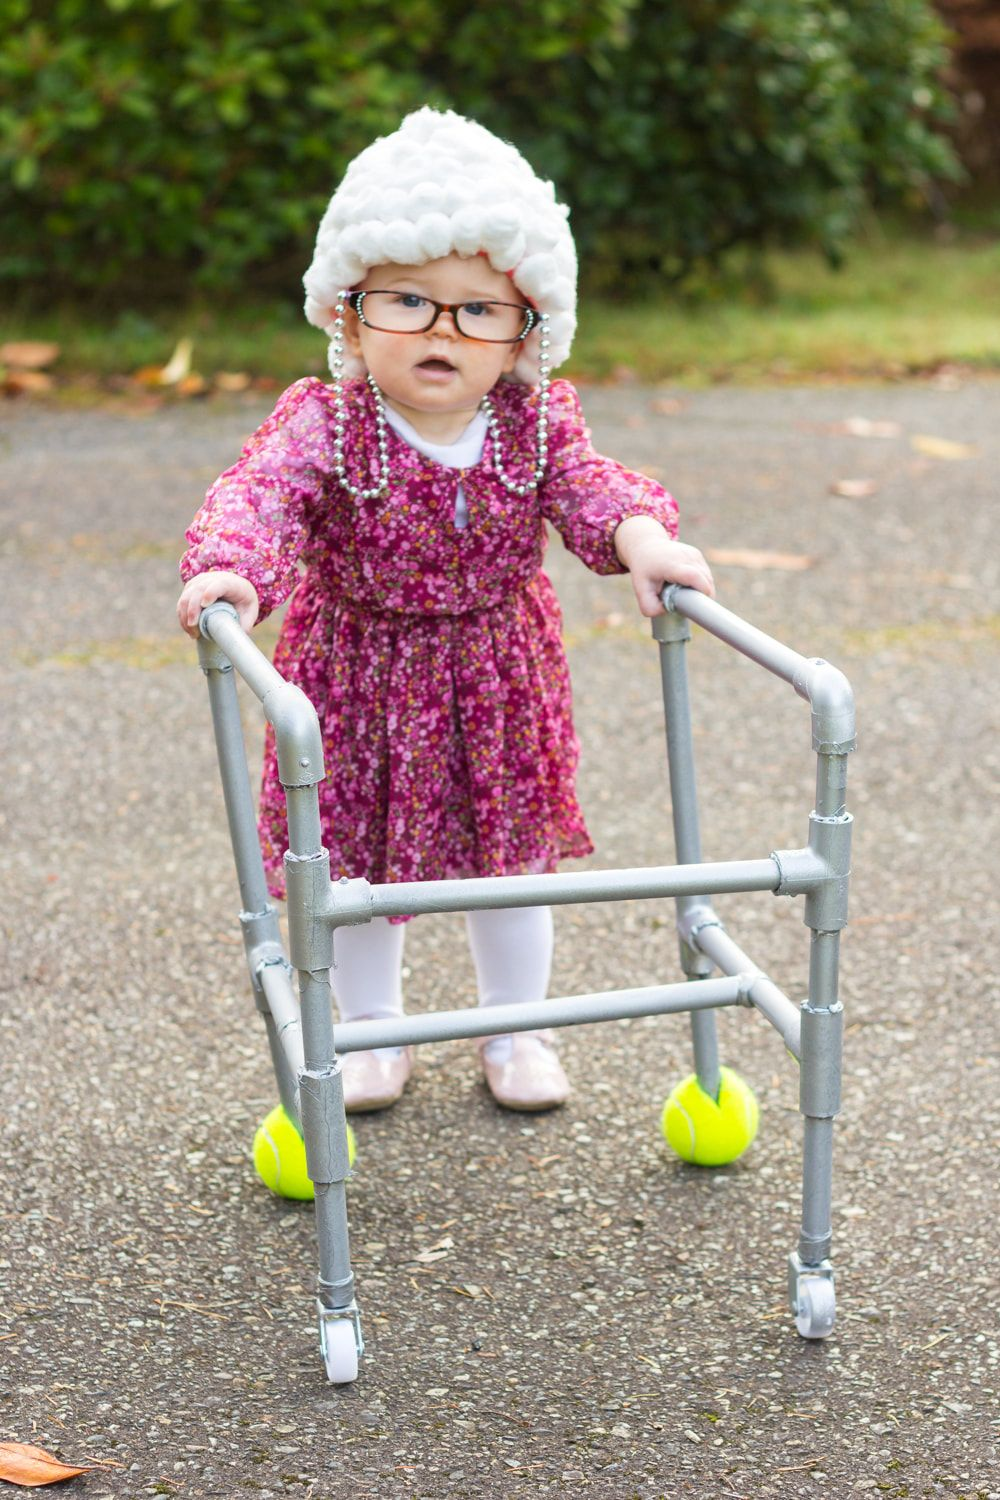 Kids Grandma Halloween Costumes 2020 Old lady costume for a toddler or baby! So CUTE. | Old lady